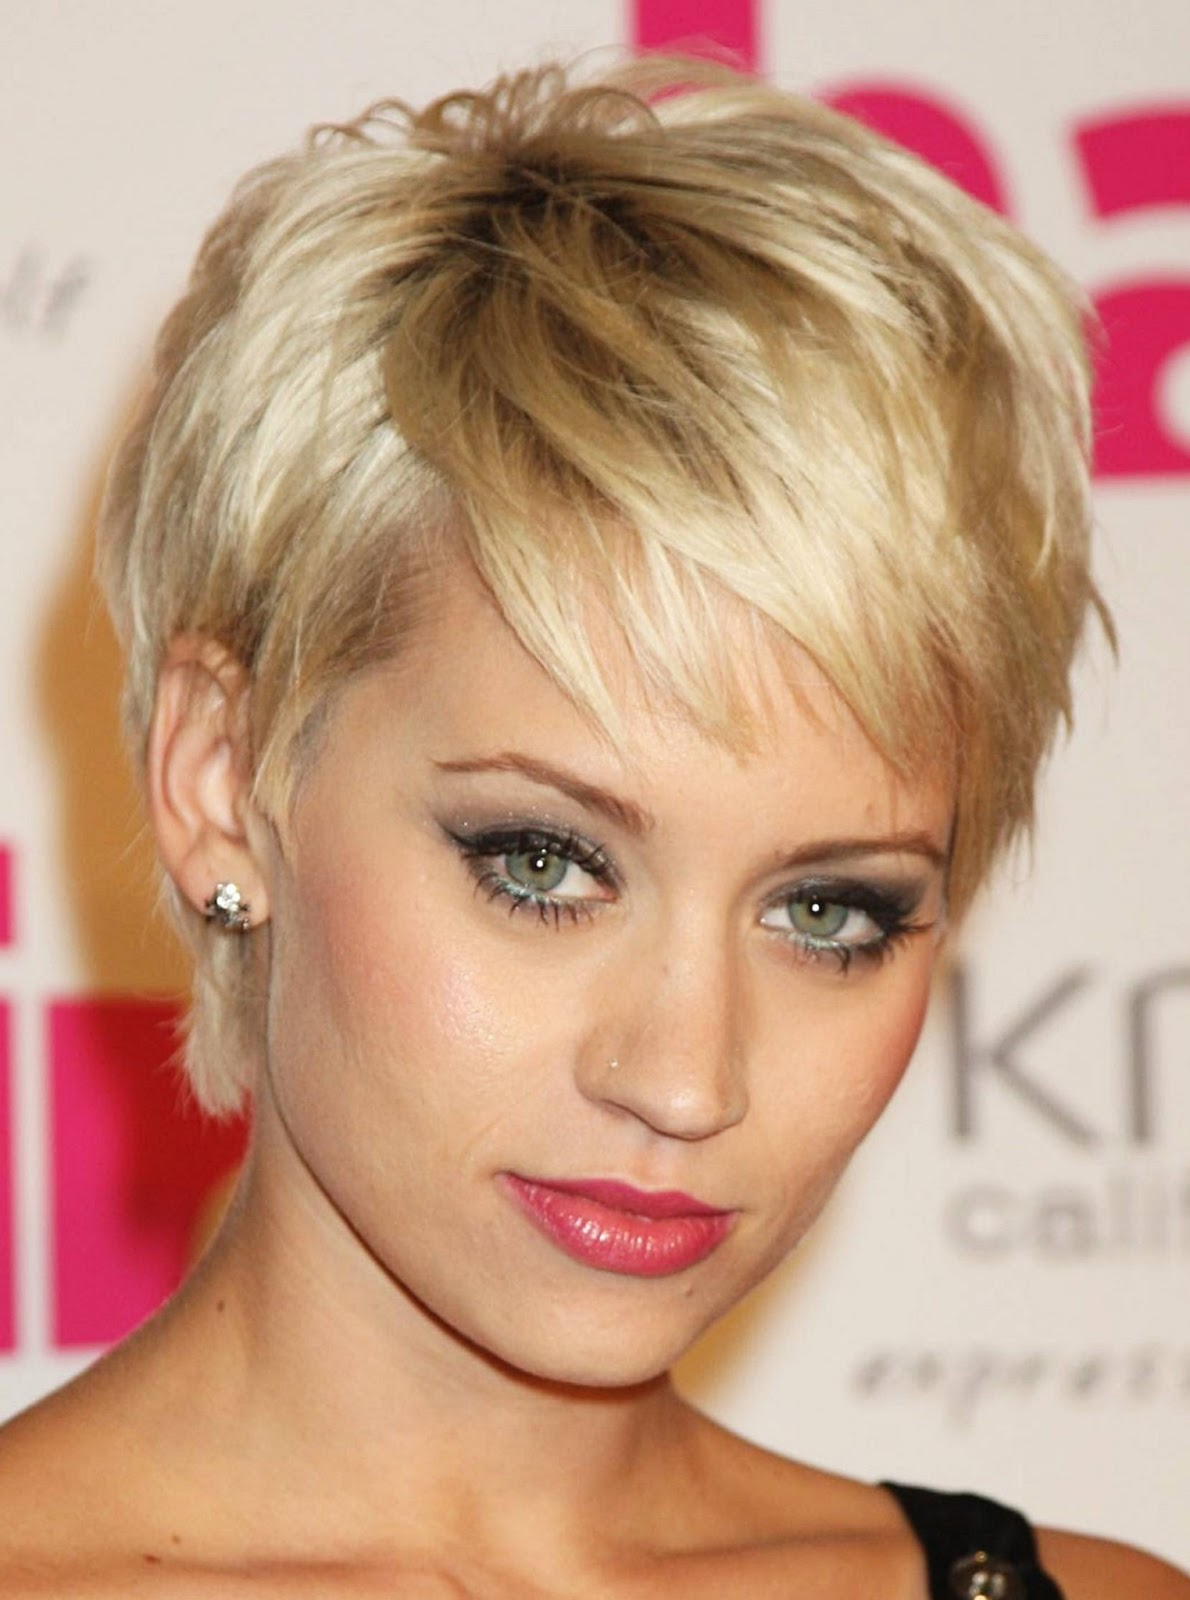 Women Trendy Hairstyles With Bangs 2013